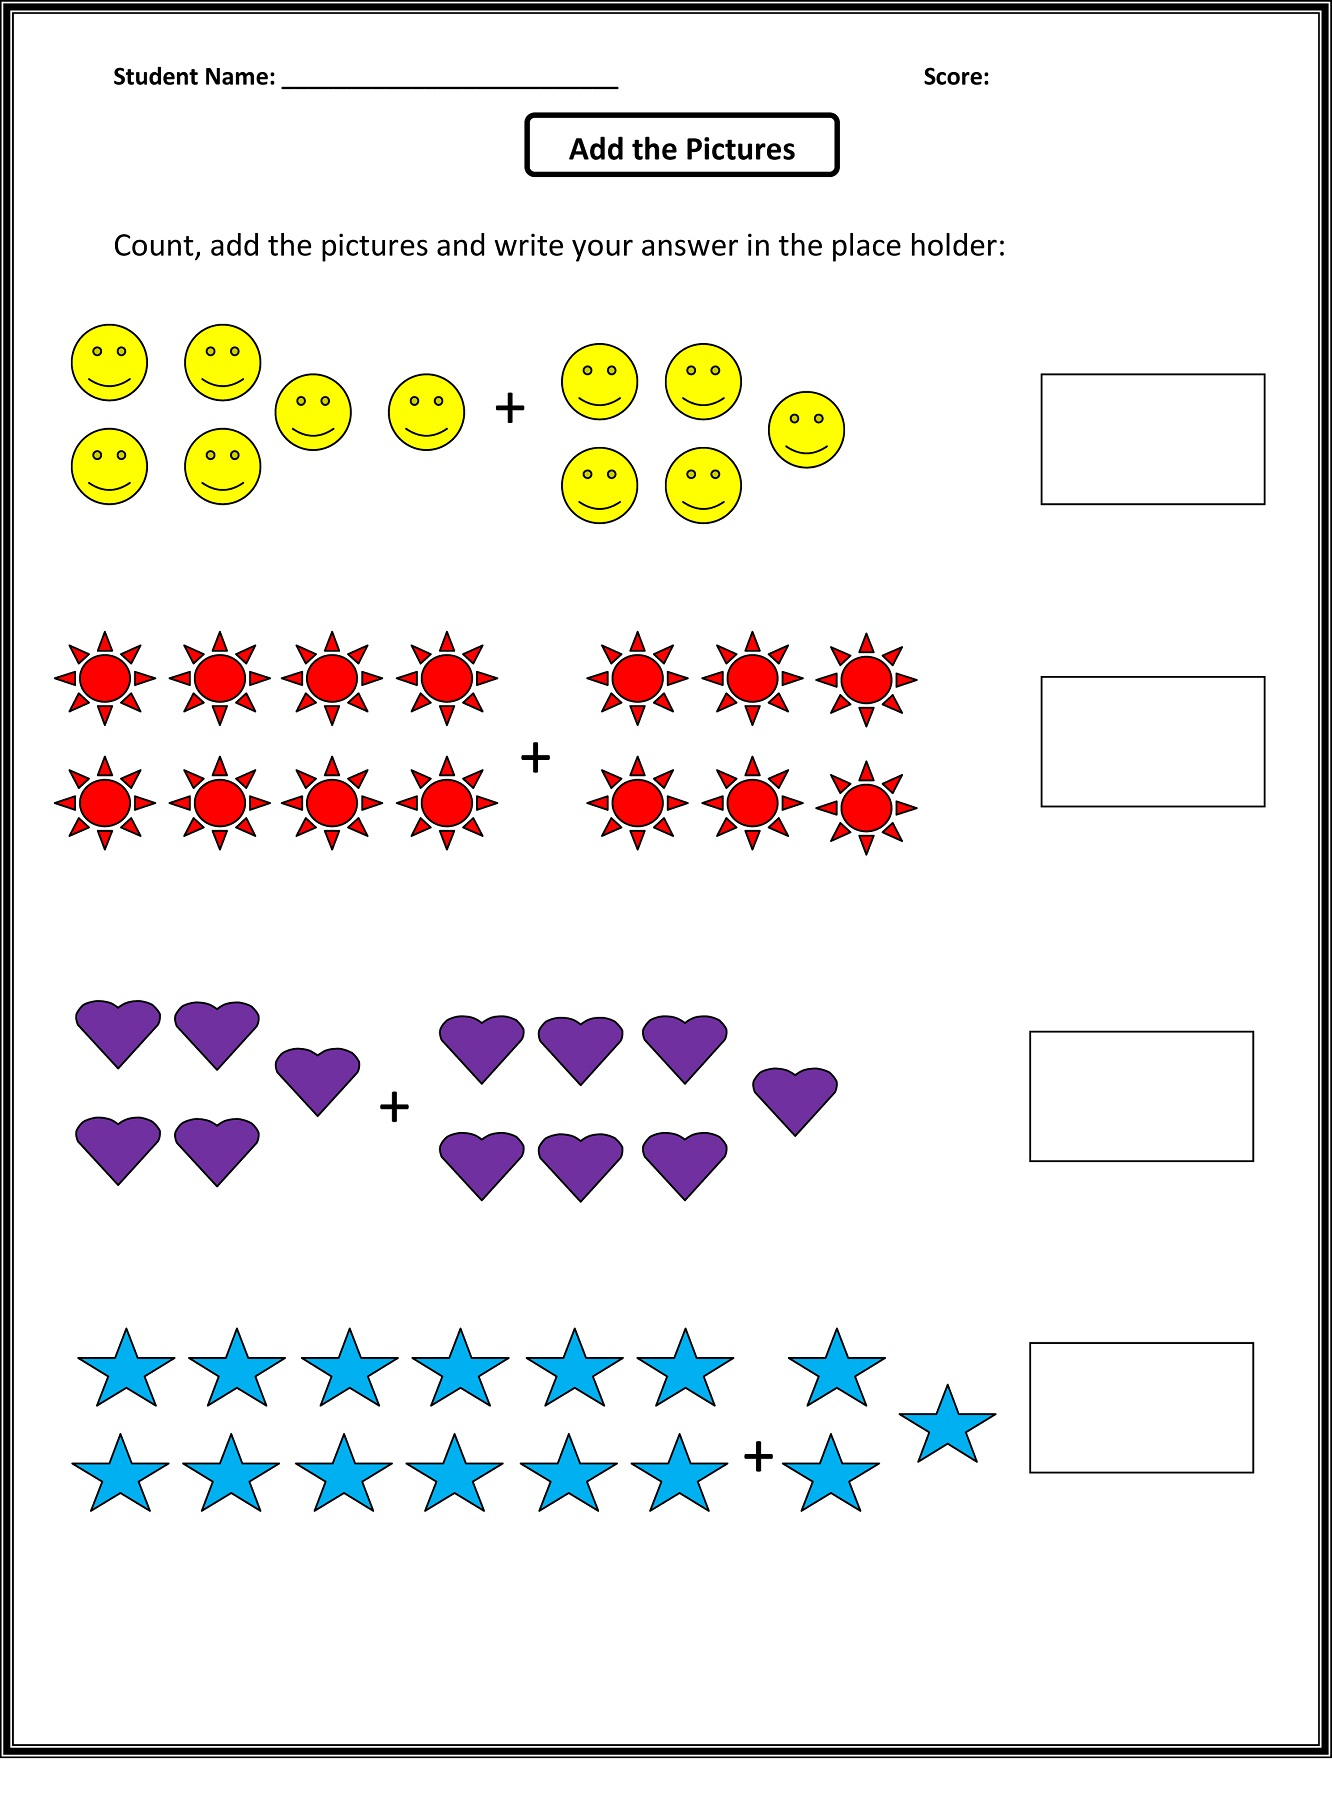 22 Free Worksheet For Grade 1 Online Printable Docx